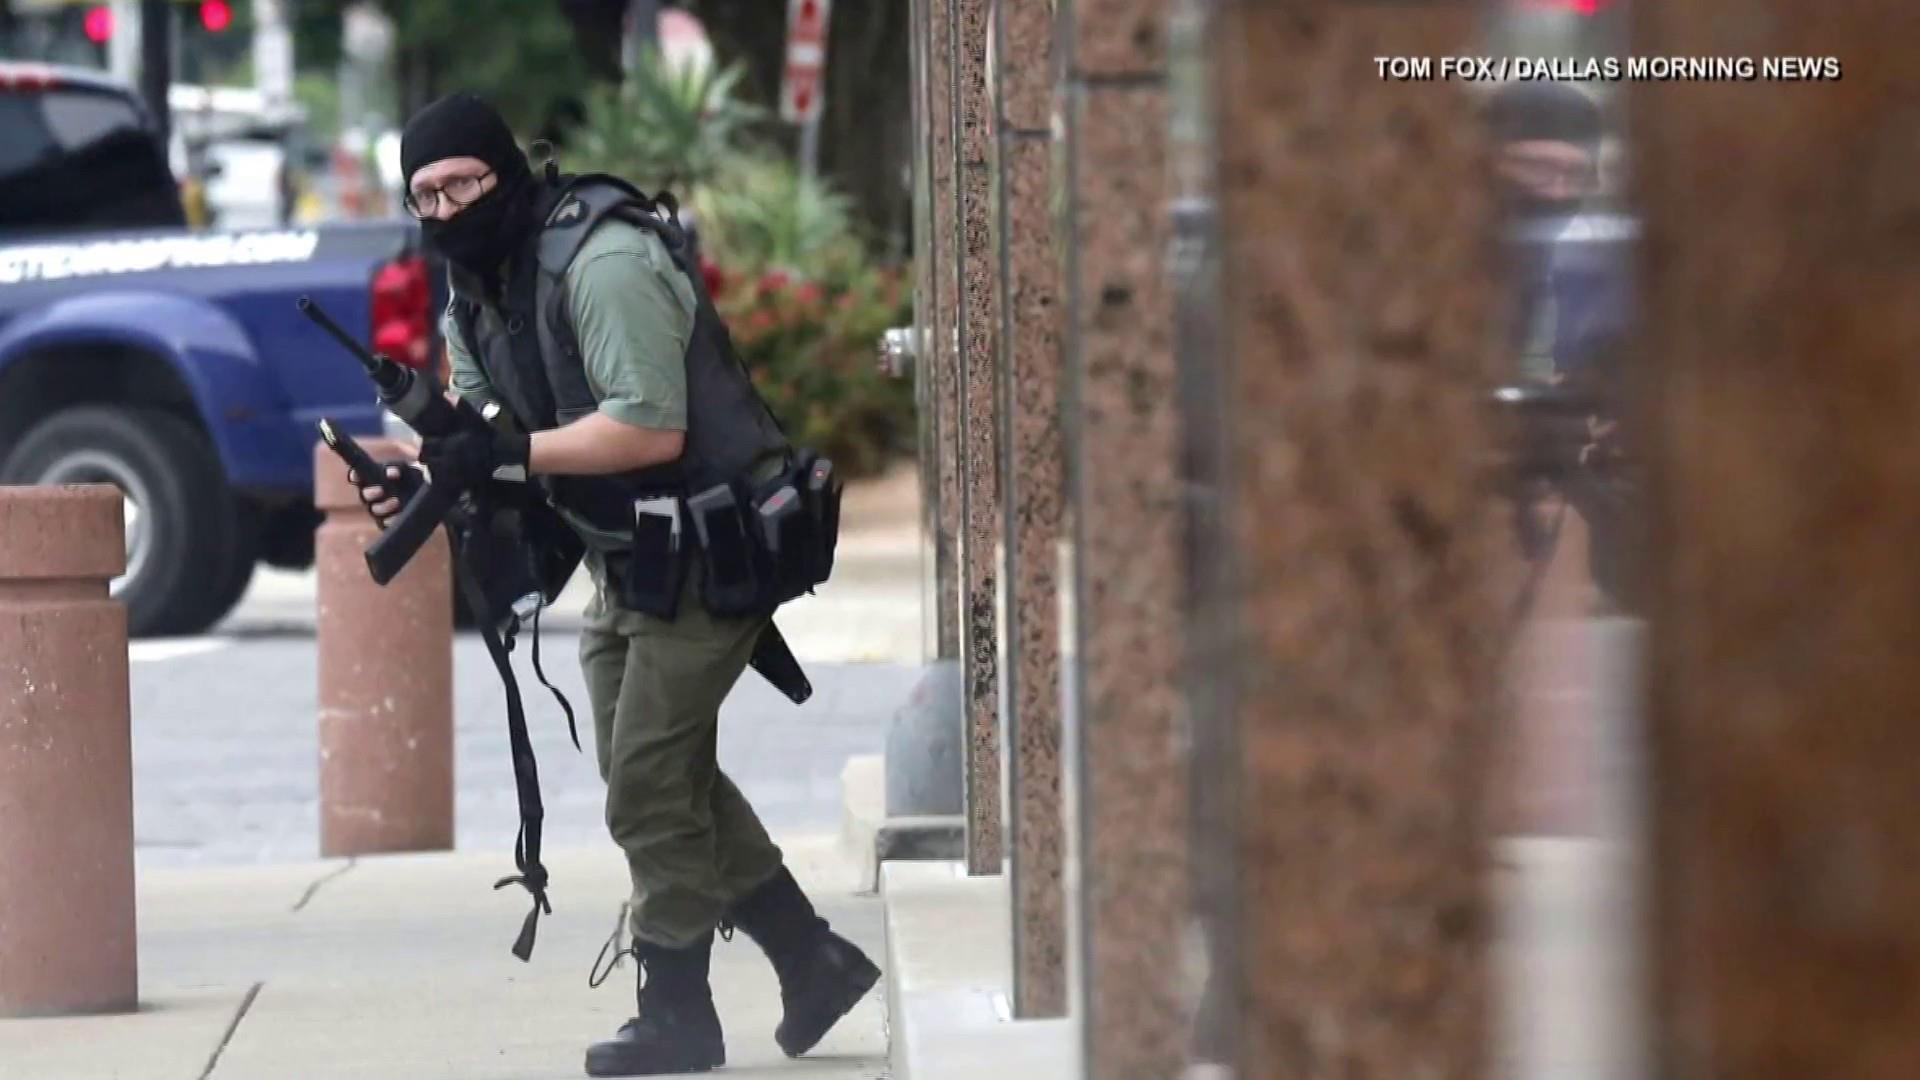 Suspected gunman killed after shootout outside Dallas courthouse